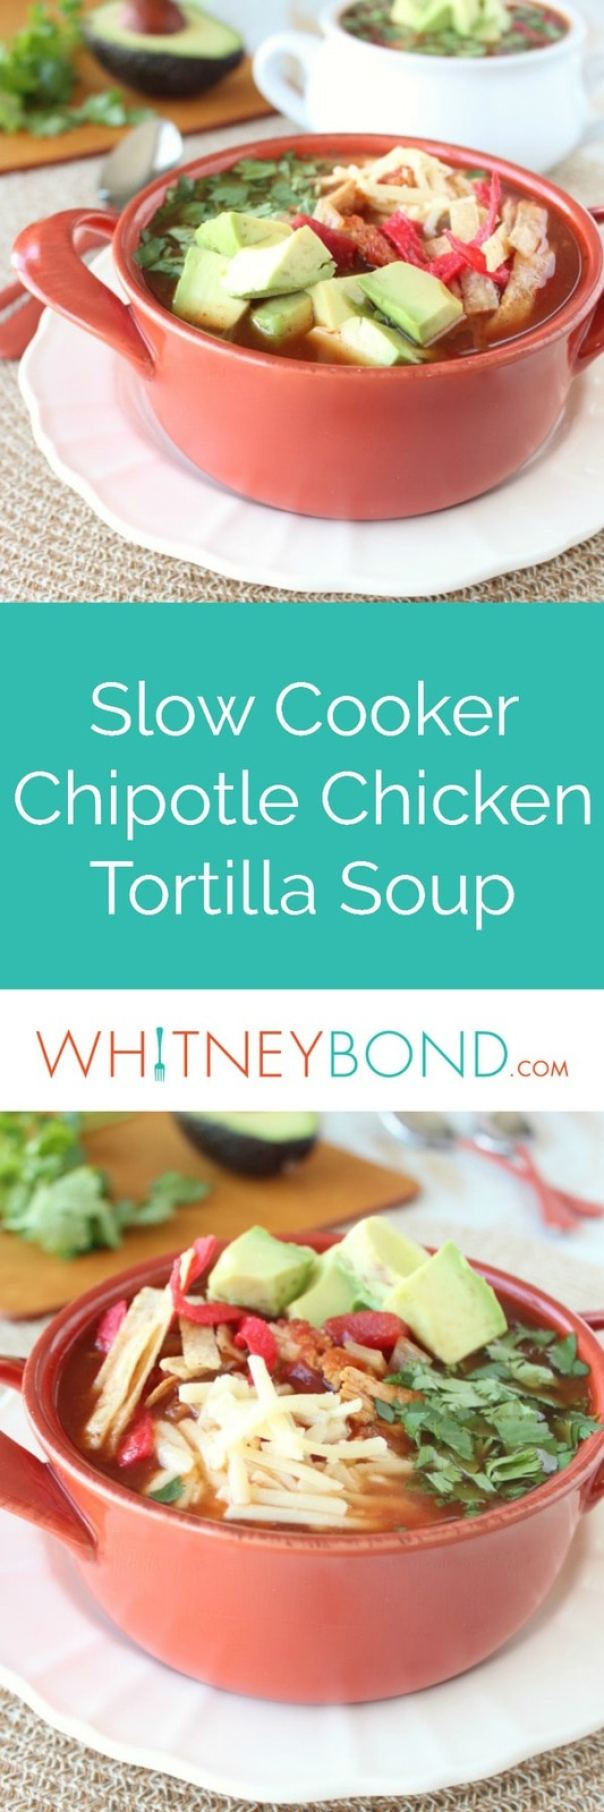 This slow cooker chicken tortilla soup recipe is given a smokey, spicy kick with the addition of chipotle peppers, it's simple, healthy & gluten free!